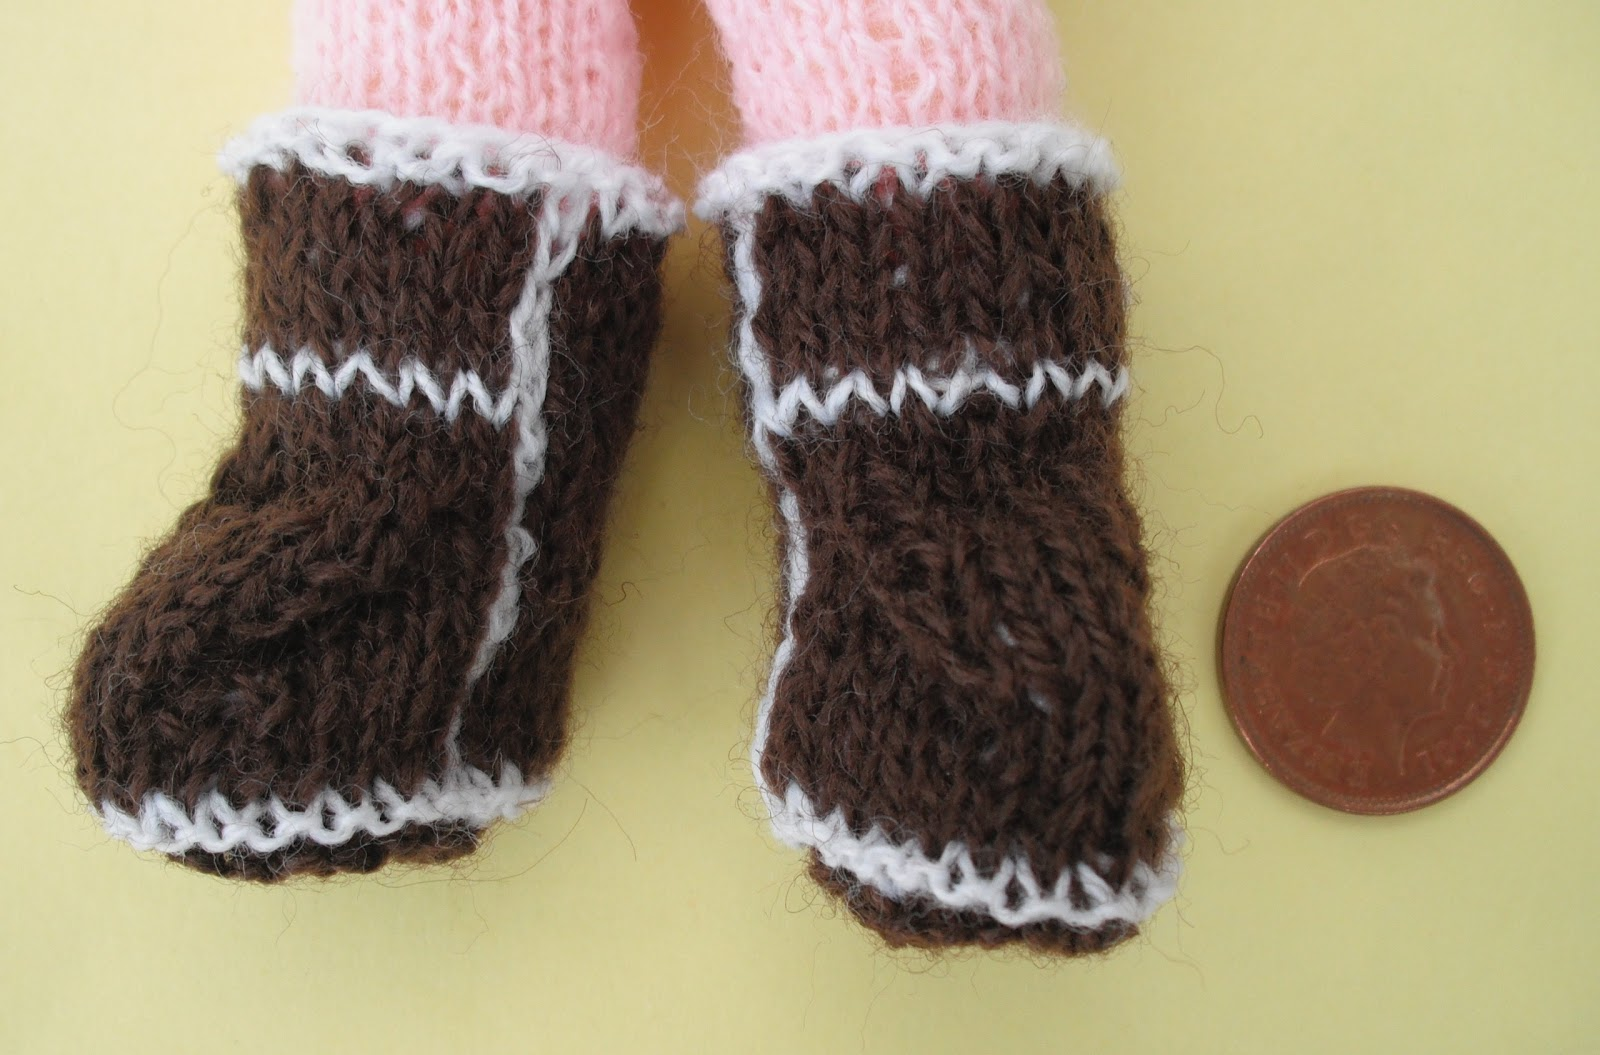 bitstobuy: Not just knitted baby ugg boots but tiny tiny doll Ugg boots